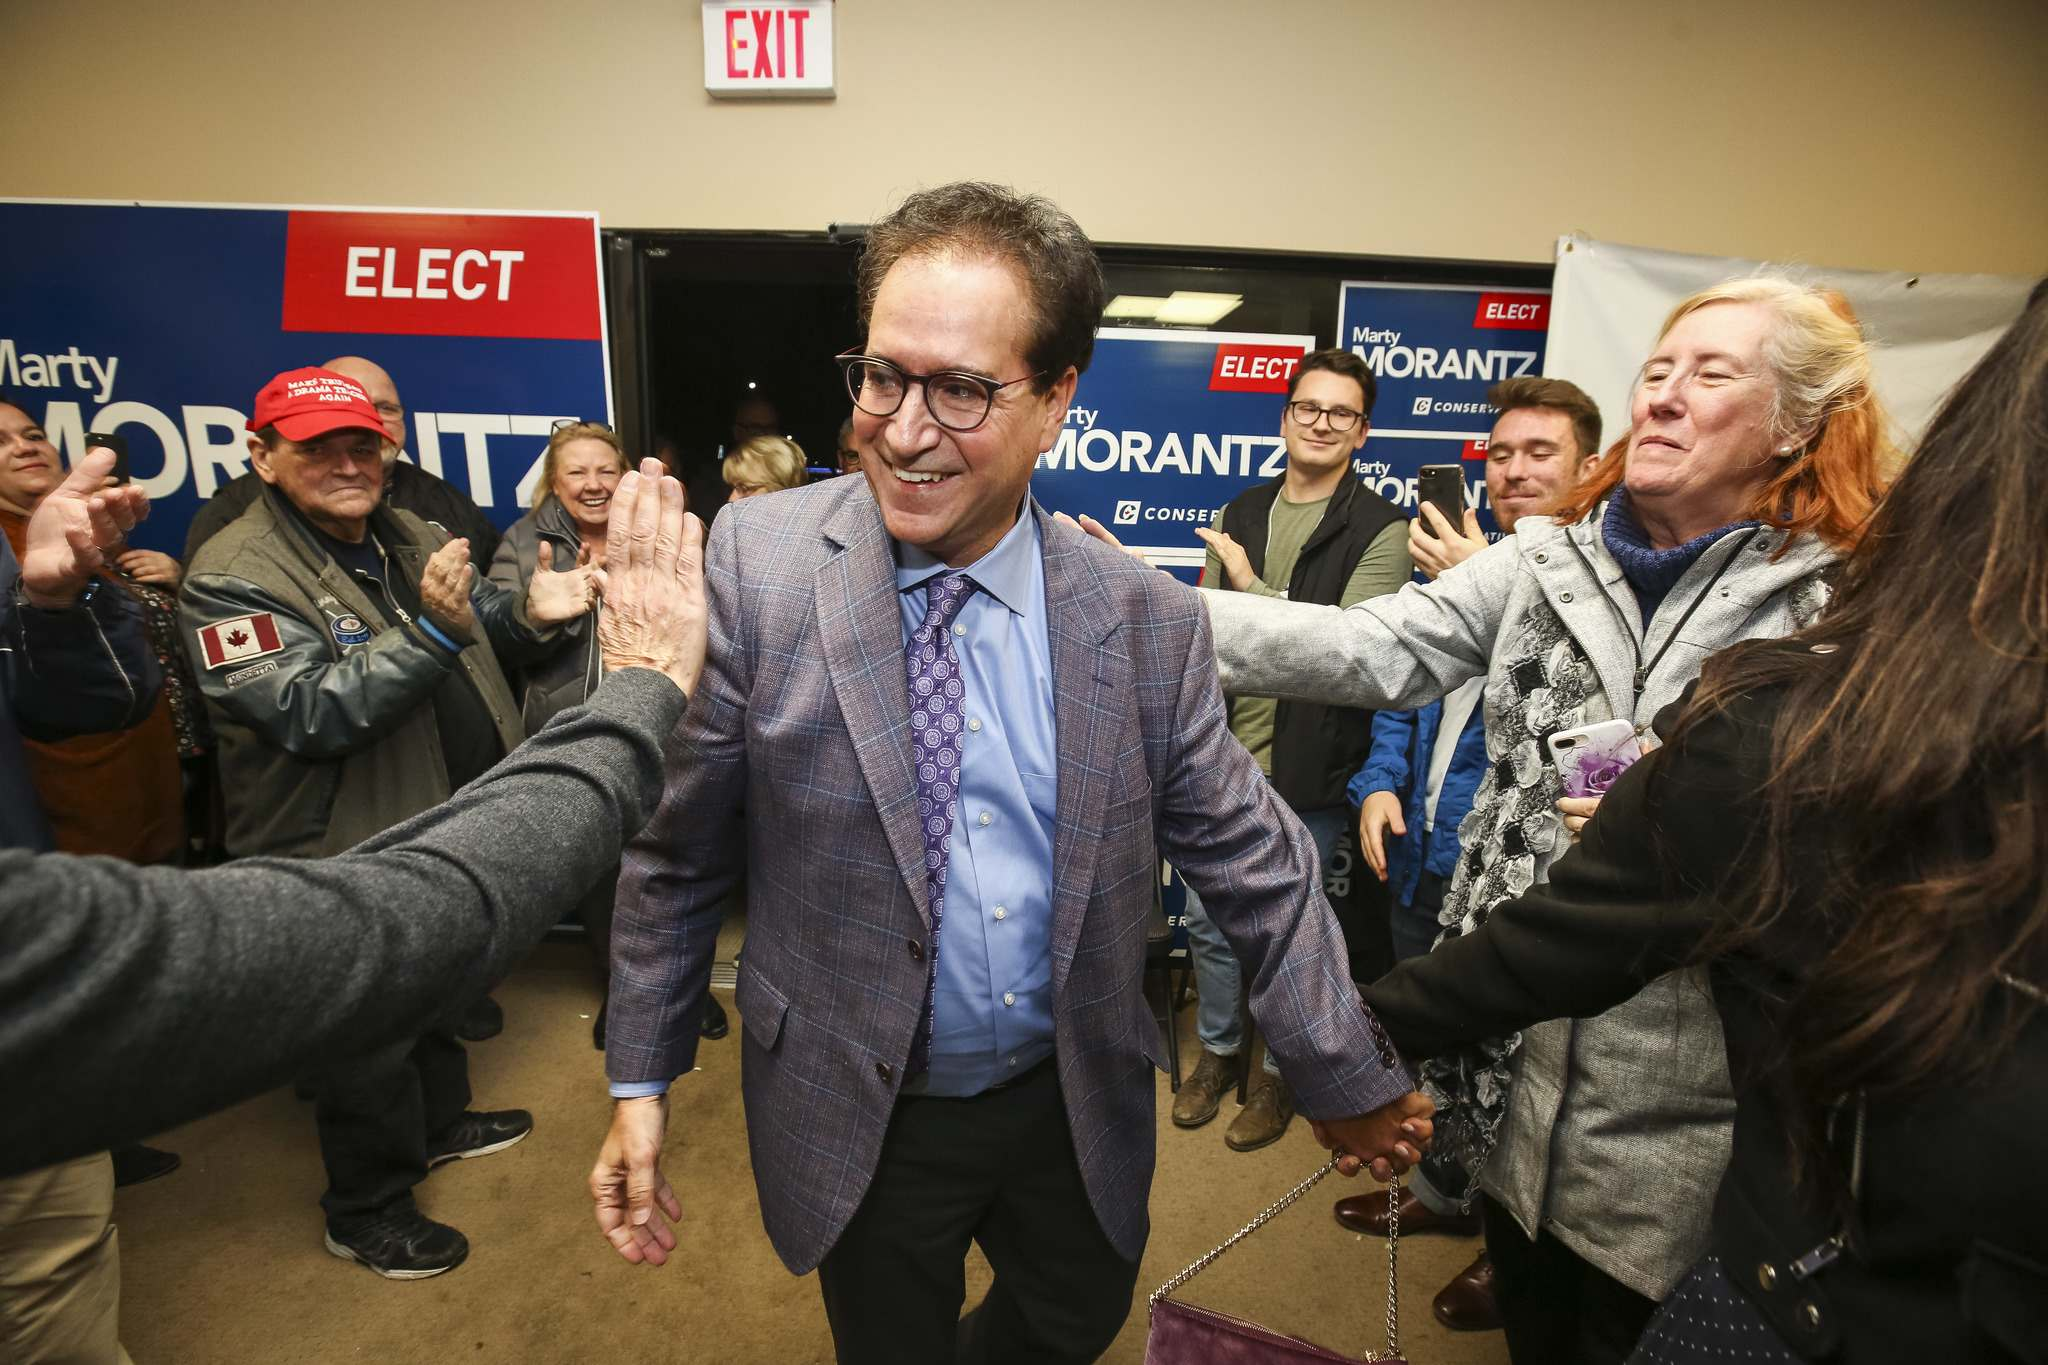 Marty Morantz heads to Ottawa after spending four years as a Winnipeg city councillor, before announcing his intention to seek federal office in May 2019. (Mike Deal / Winnipeg Free Press)</p>